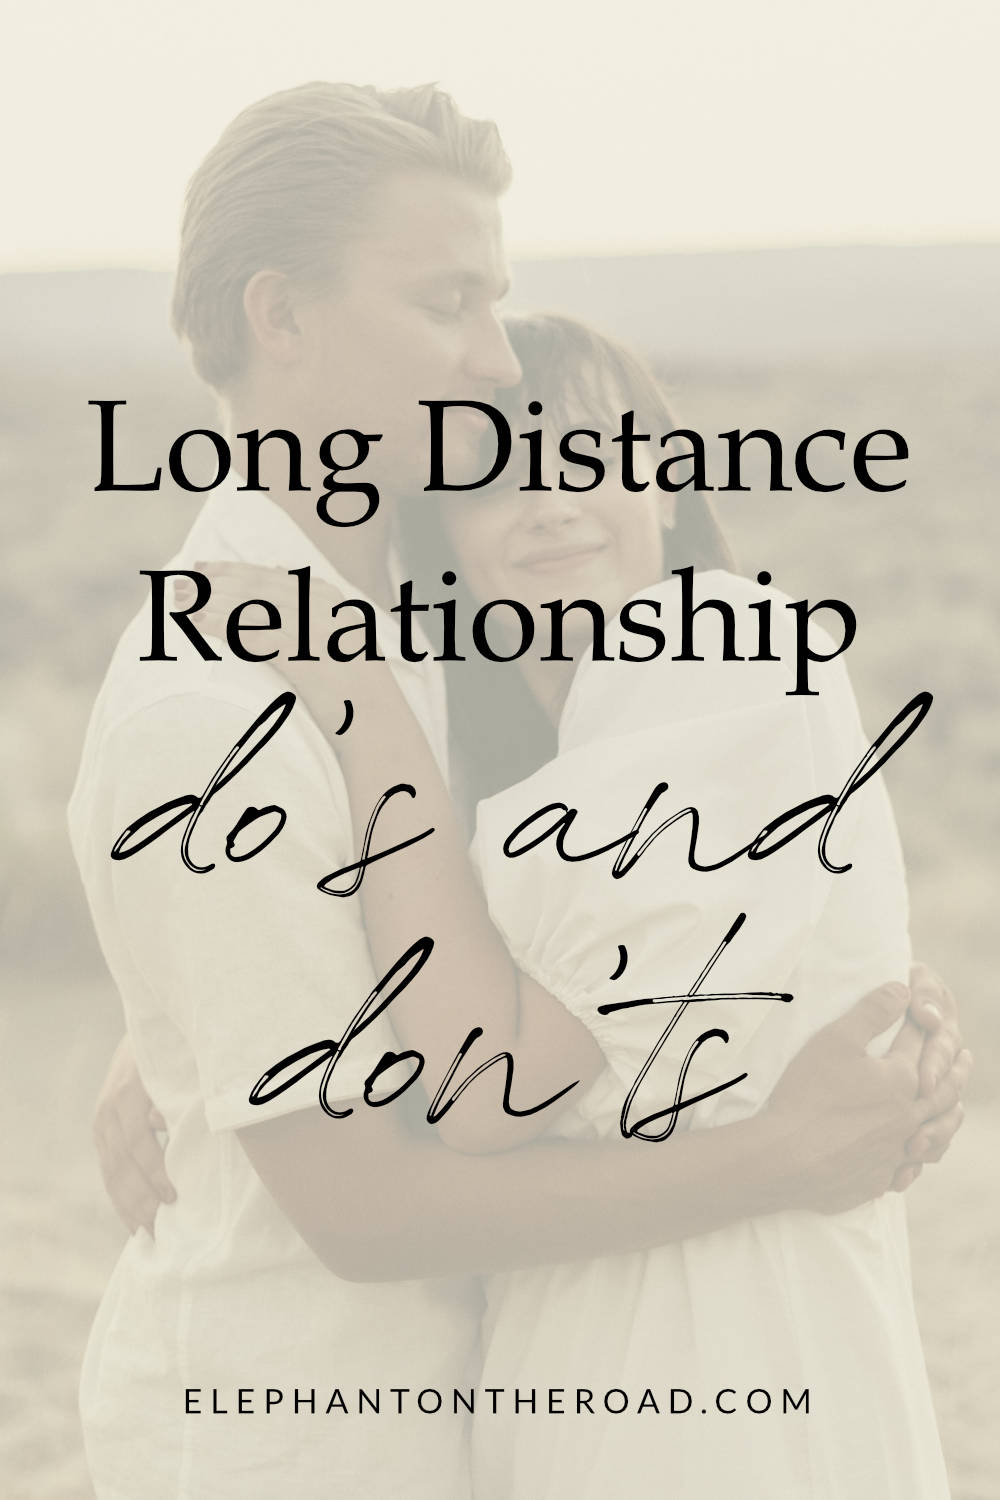 Long Distance Relationship Do's And Don'ts. How To Make A Long Distance Relationship Work. Maintain A Long Distance Relationship. Tips To Make A Long Distance Relationship Work. Long Distance relationship Tips. Long Distance Relationship Advice. LDR Tips. LDR Advice. Long Distance Boyfriend. Long Distance Girlfriend. Elephant on the Road.